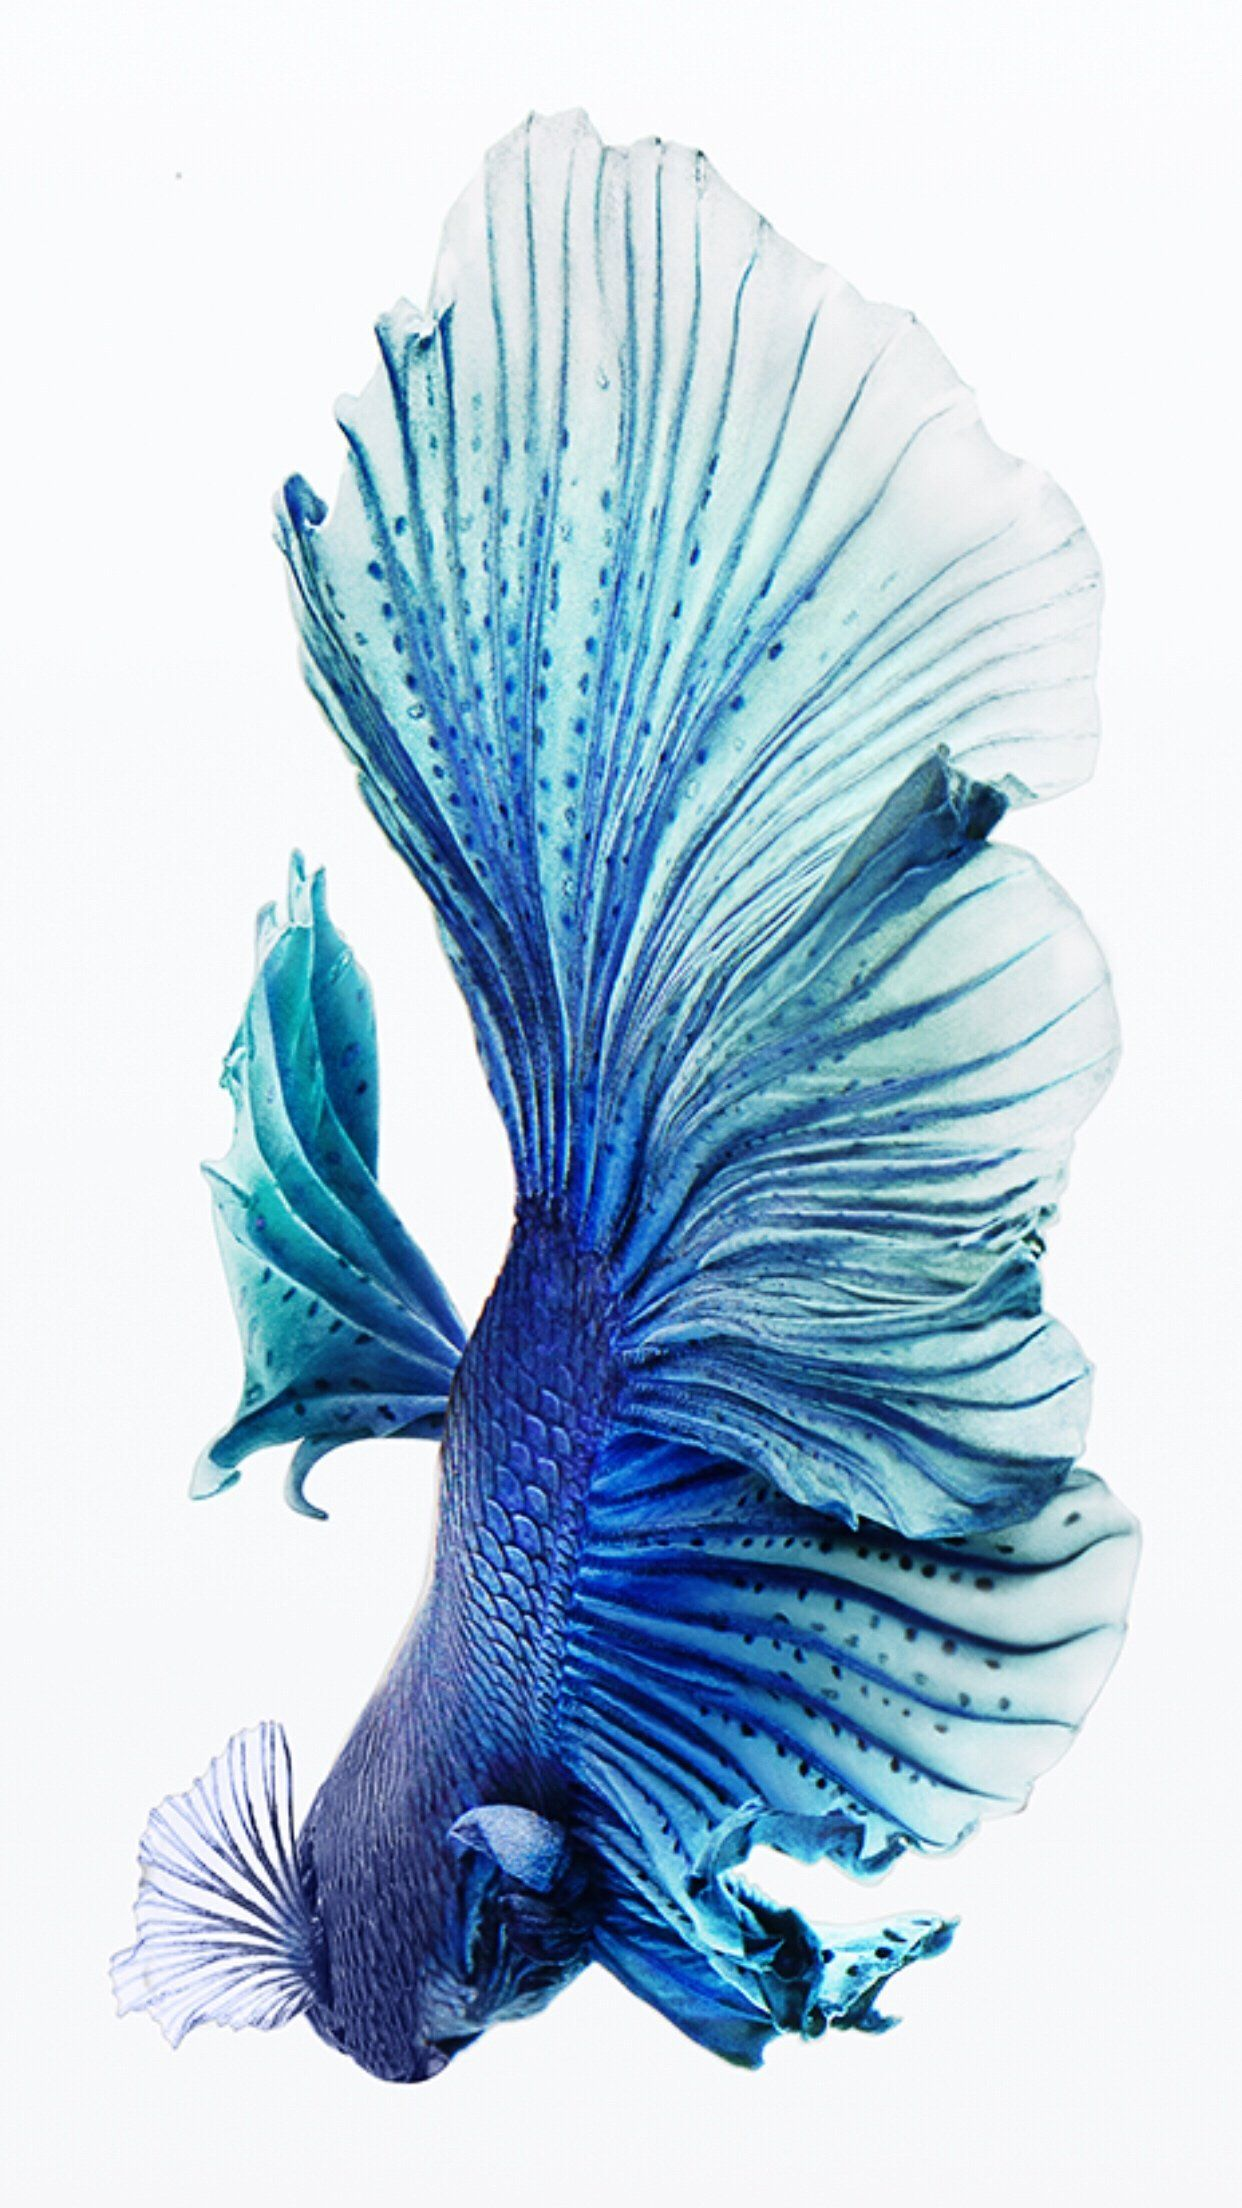 Blue Halfmoon Male Betta Fish Wallpaper Betta Fish Betta